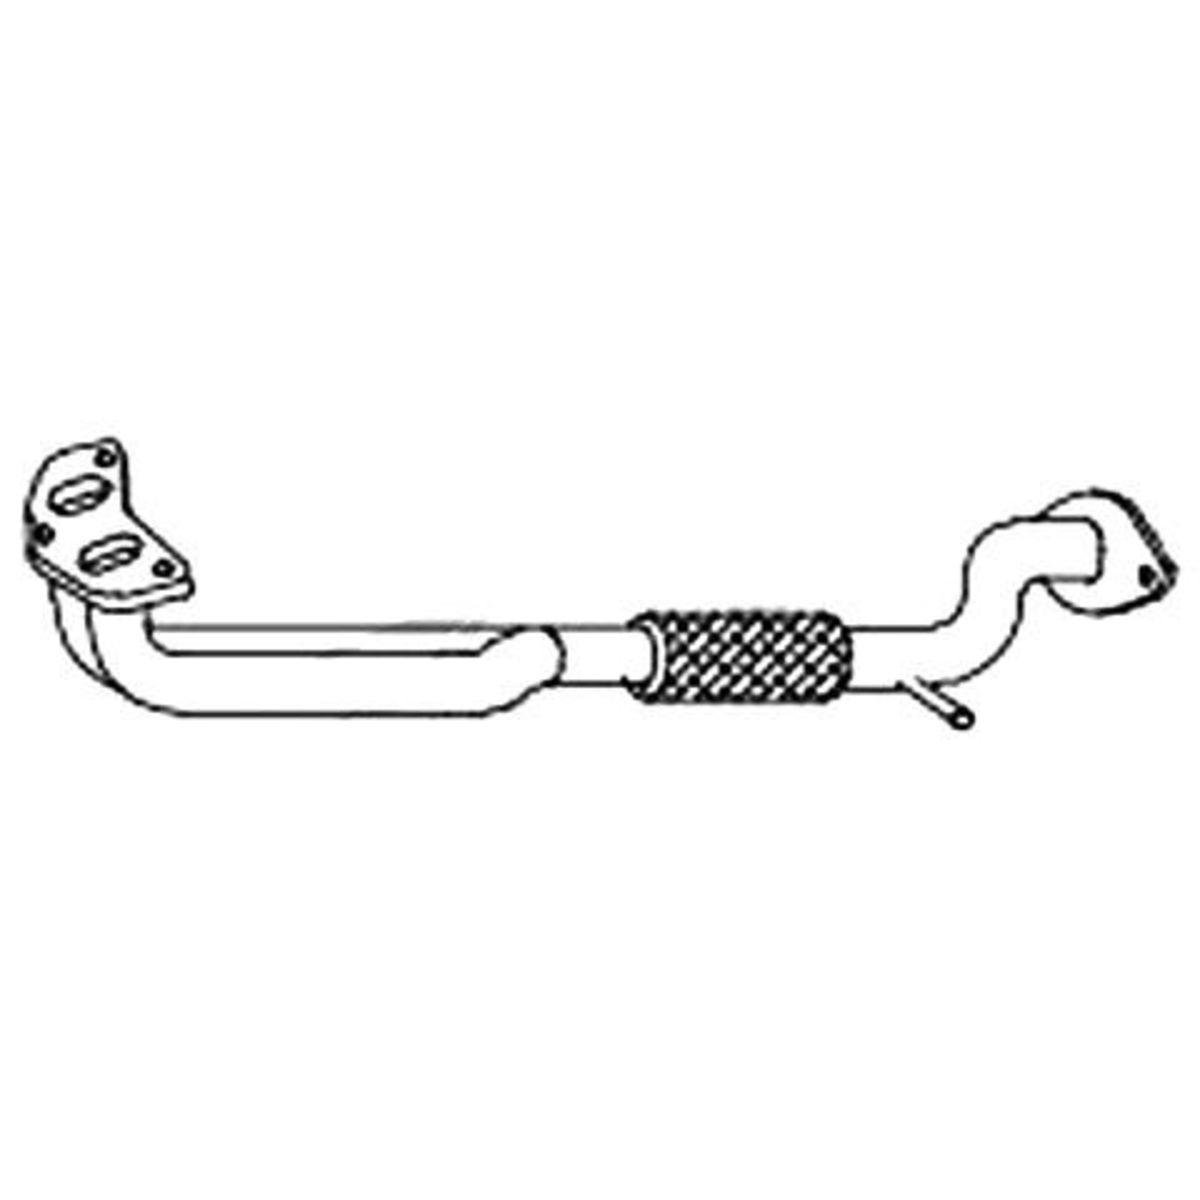 Redback Engine Pipe to suit Hyundai Scoupe (1992 - 1996), S Coupe (10/1992 - 05/1996)